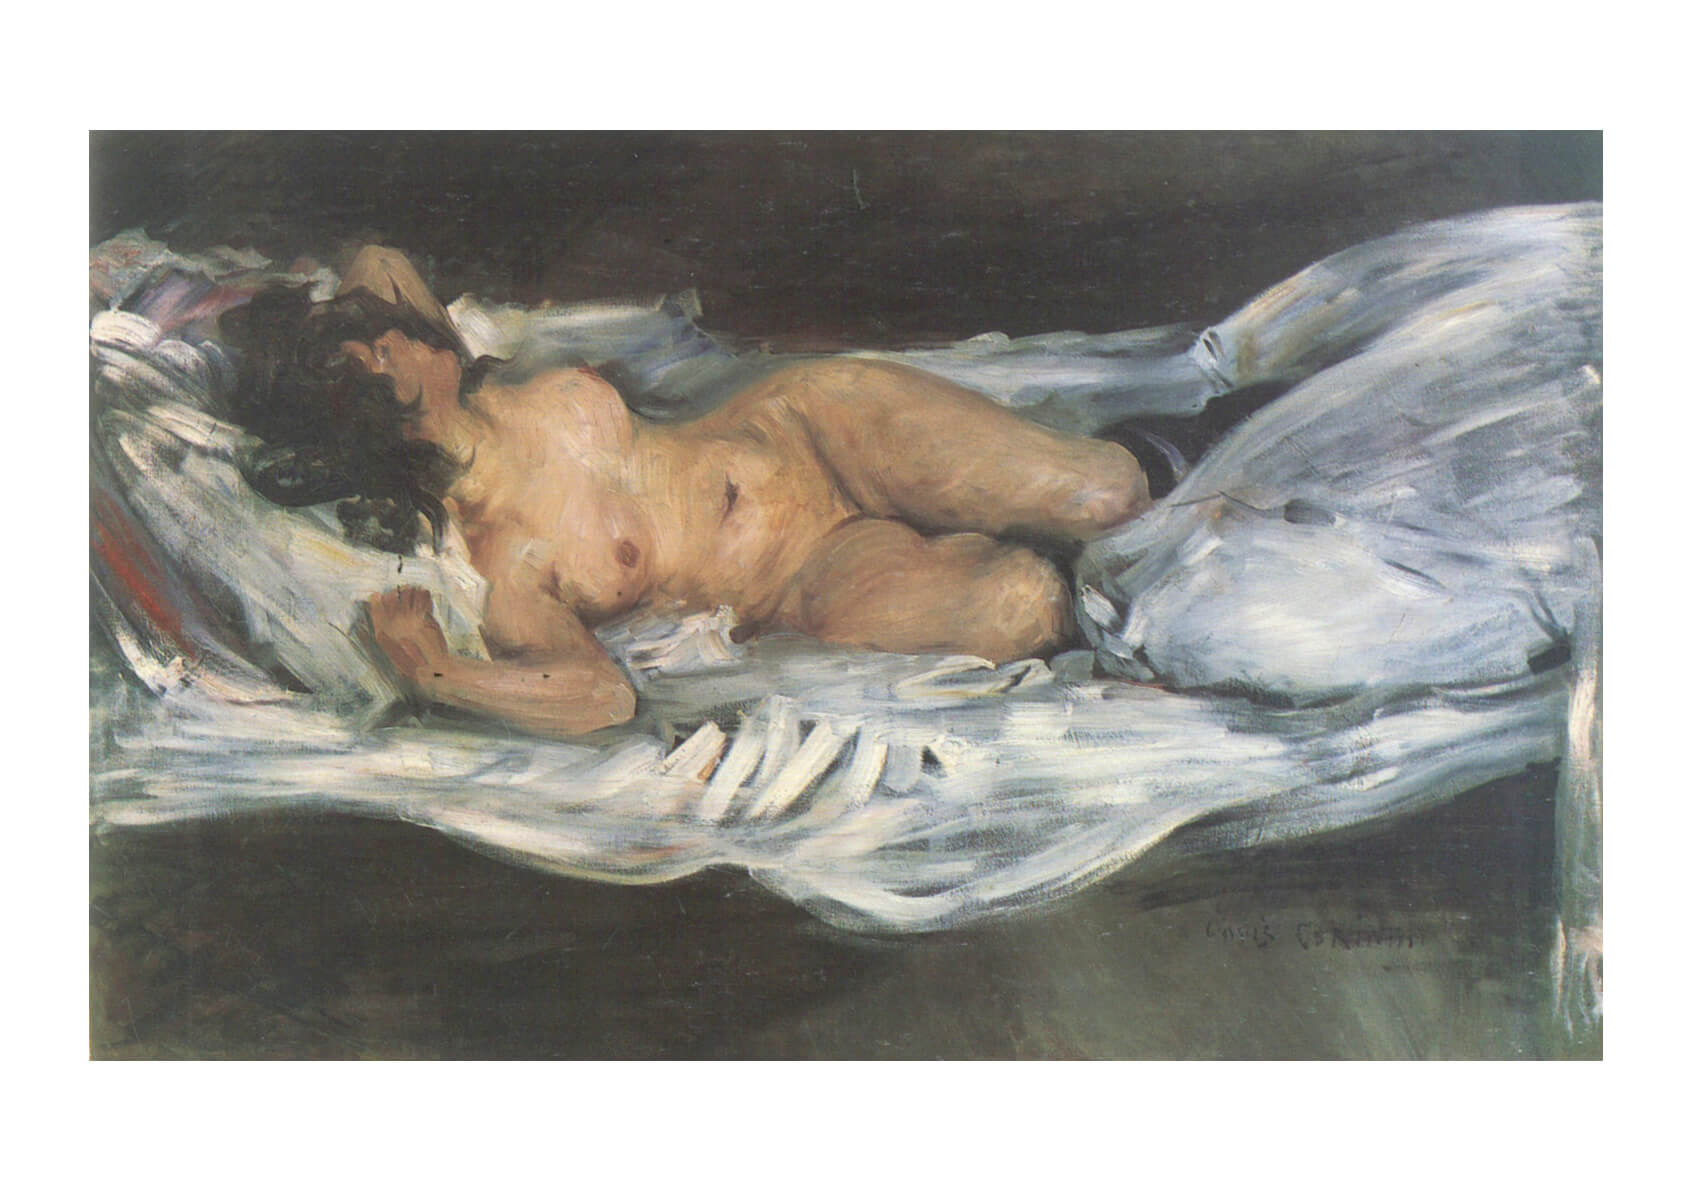 Lovis Corinth - Woman in Bed